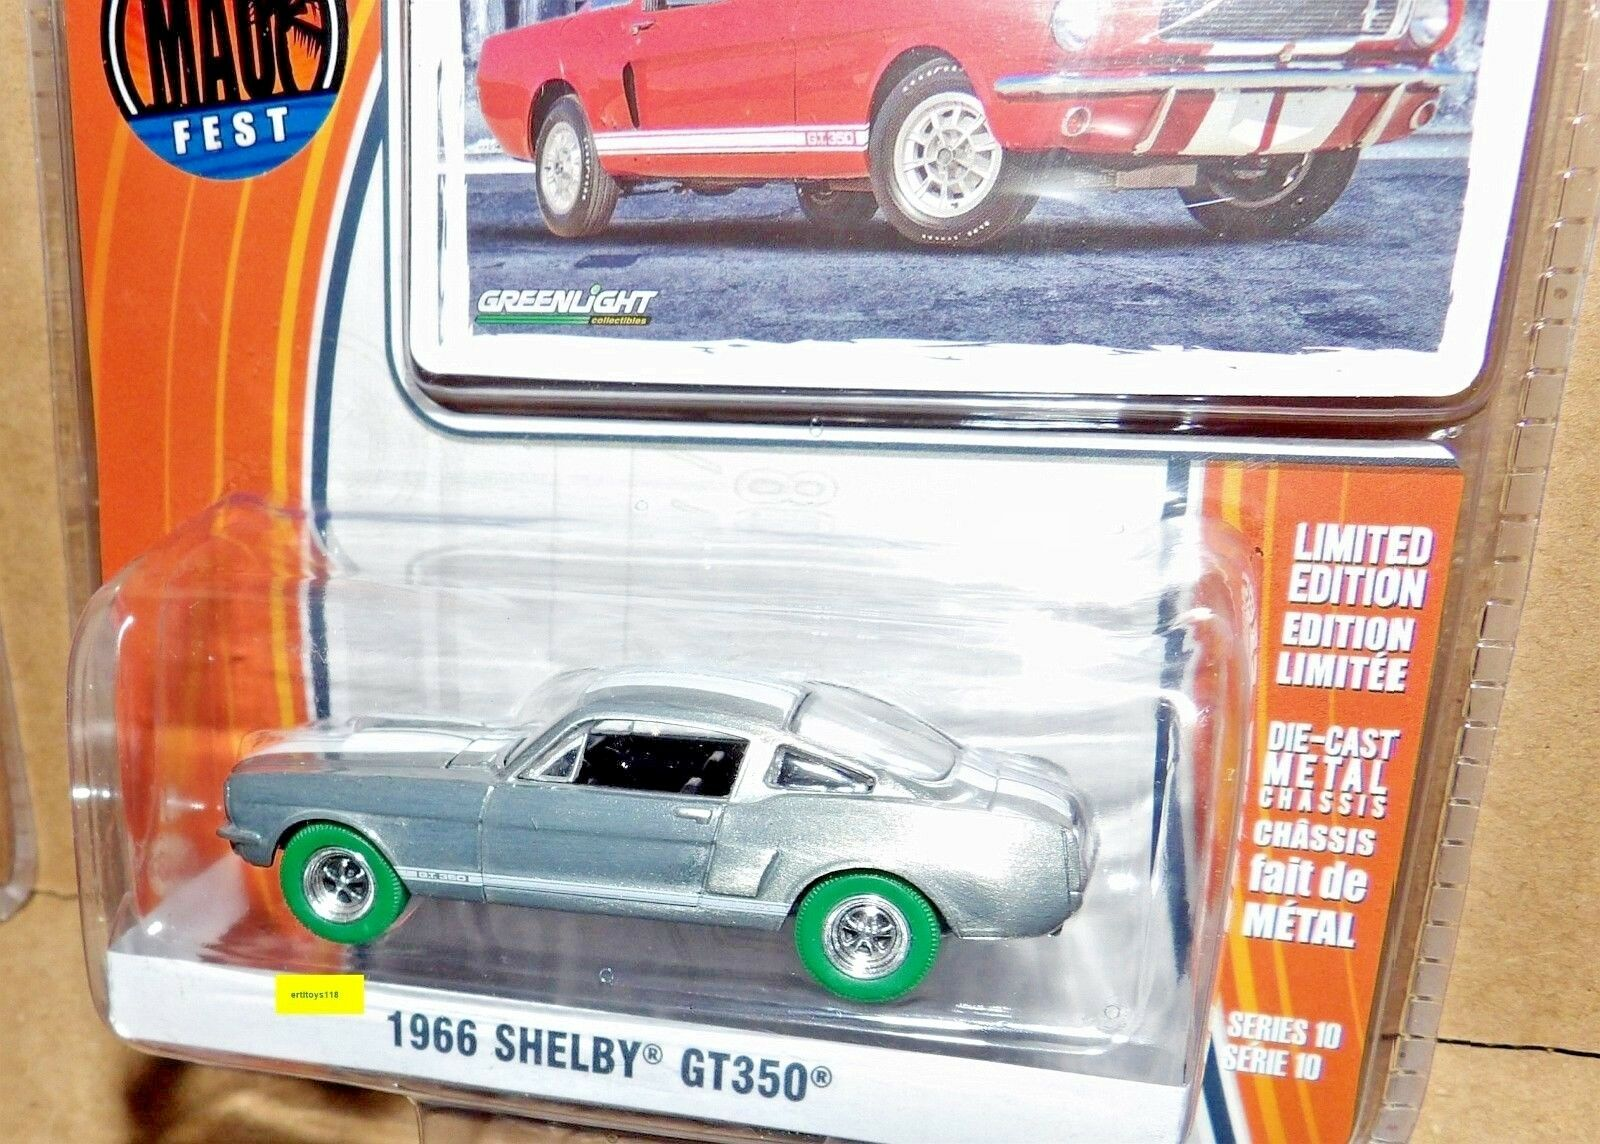 vertlight vert Super Chase Raw Muscle Maui Fest  21 1966 SHELBY GT350 Mustang